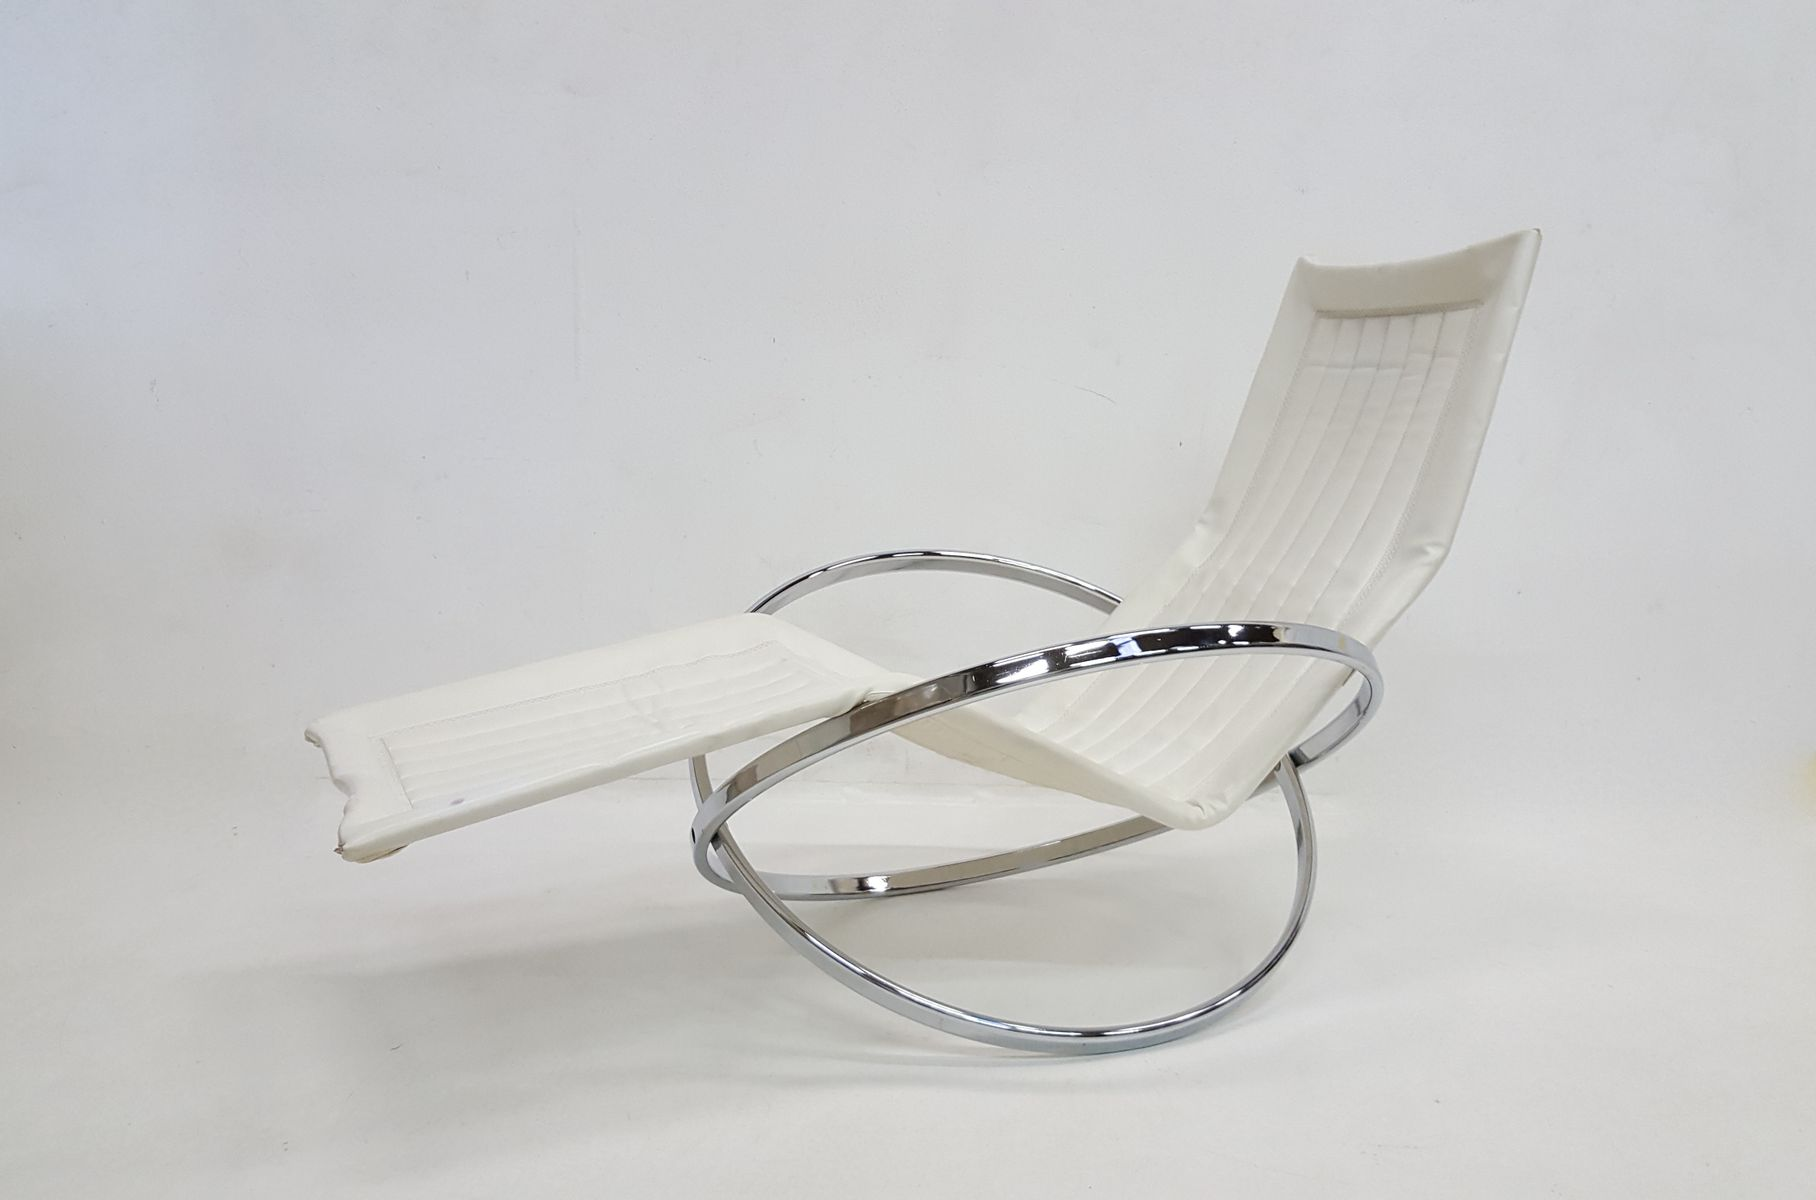 Vintage Jet Star Folding Chaise Lounge by Roger Lecal for sale at